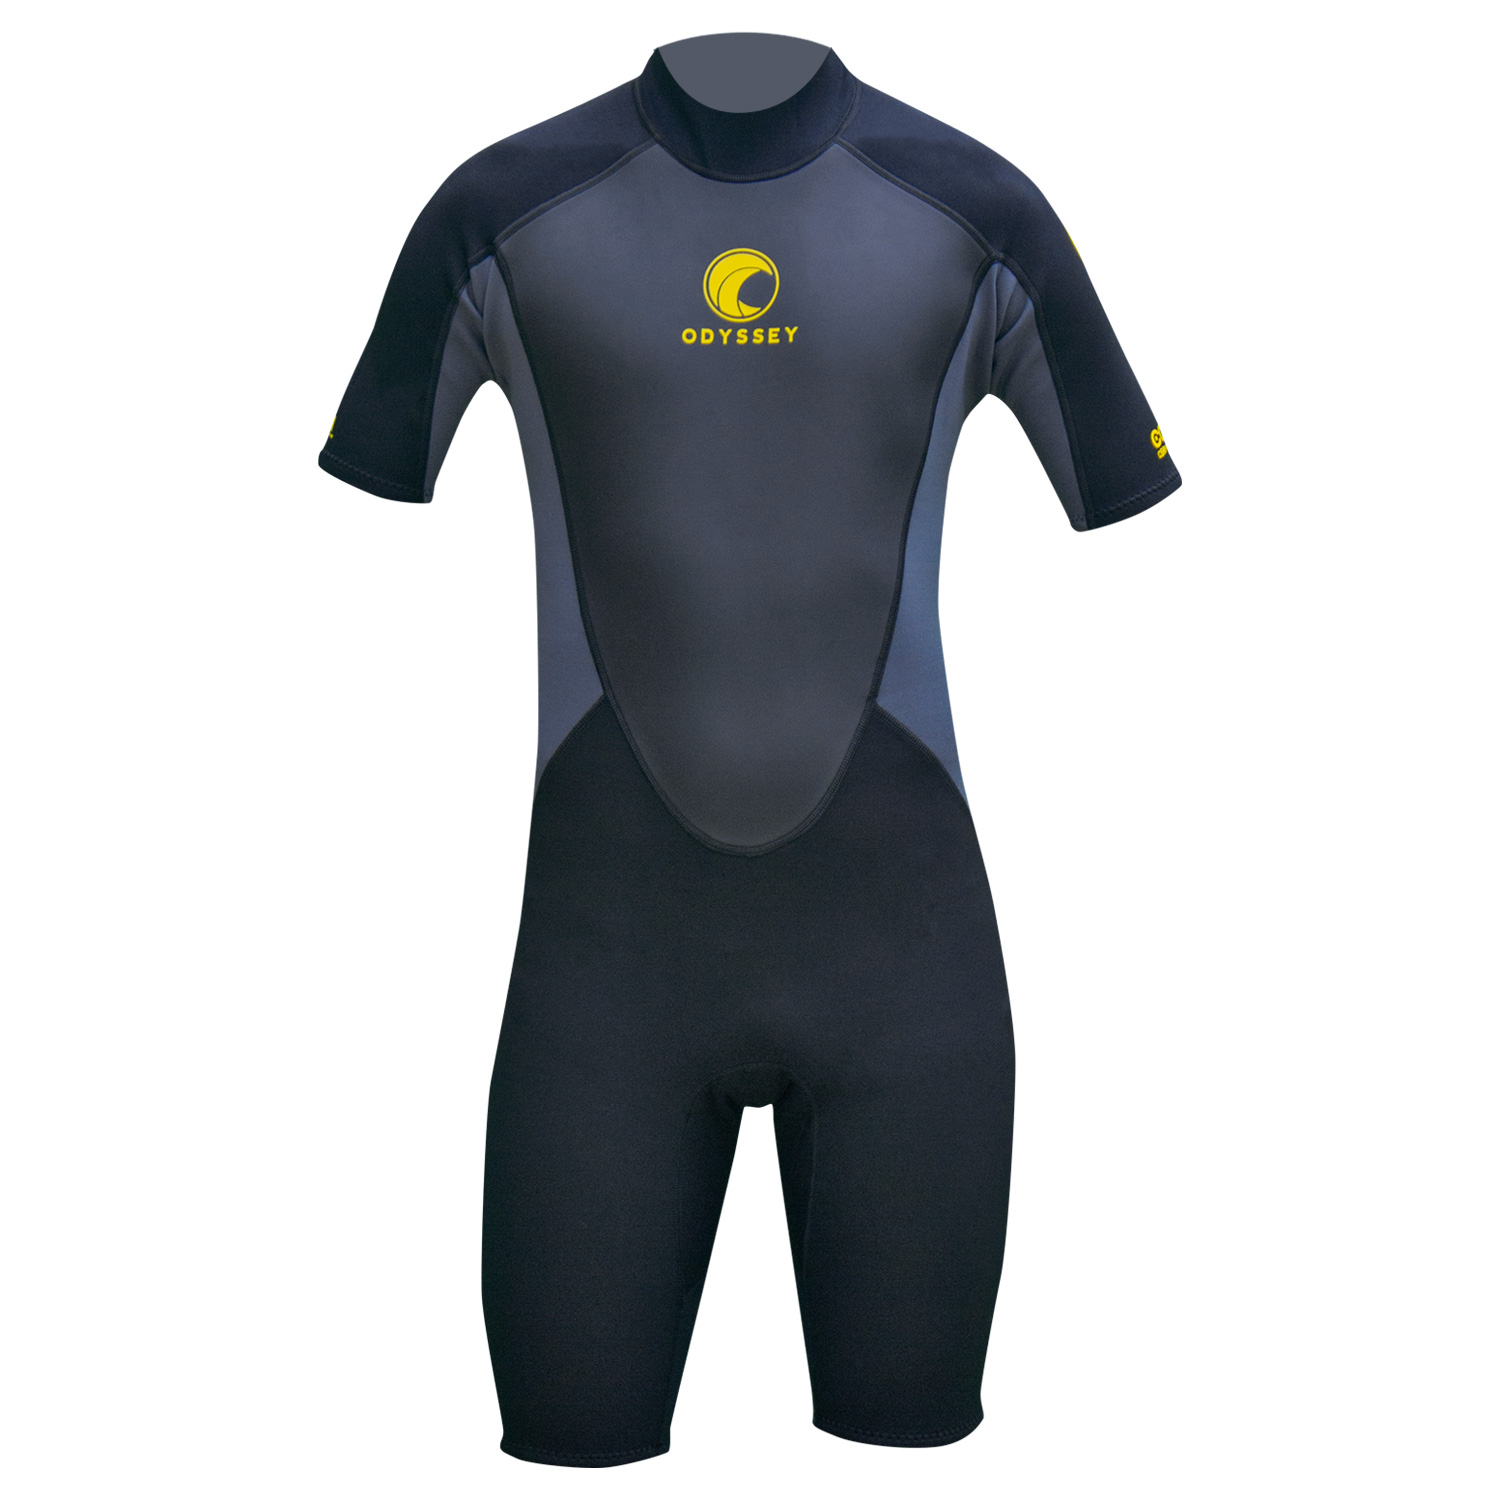 Odyssey-Core-3-2mm-Mens-Shorty-Wetsuit-Surf-Swim-Kayak-Shortie-Wet-Suit-S-XXL thumbnail 23